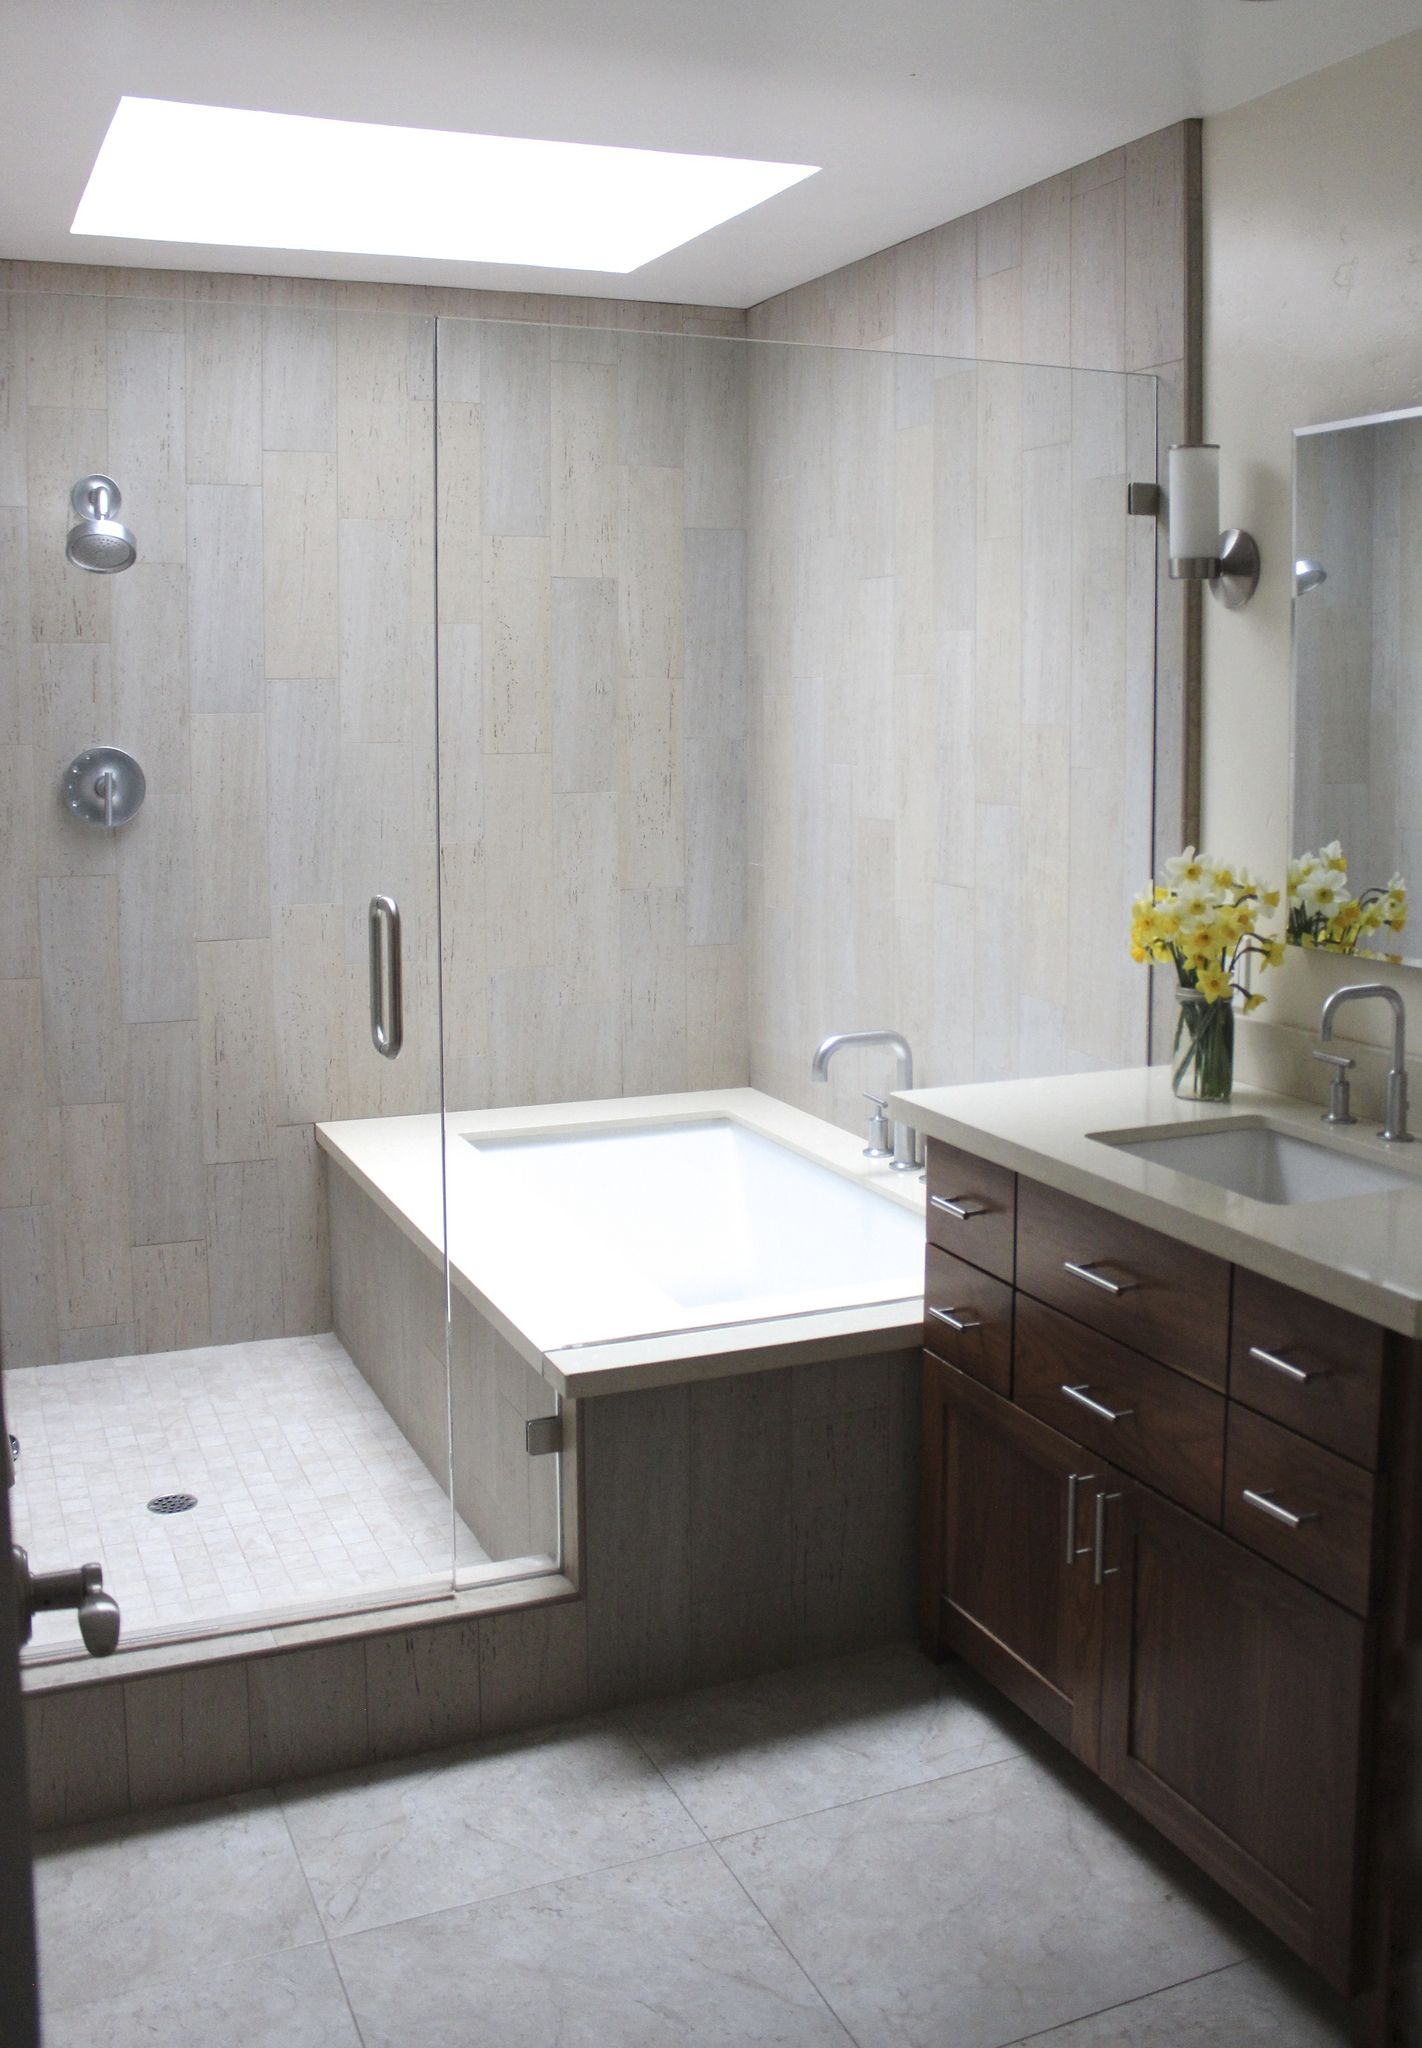 Https://flic.kr/p/kHFrv7 | Kidu0027s Bathroom Remodel Our Design | Combined Bath  Shower Converted Into Separate Ones Glassed In Together; Used Wood Plank ...